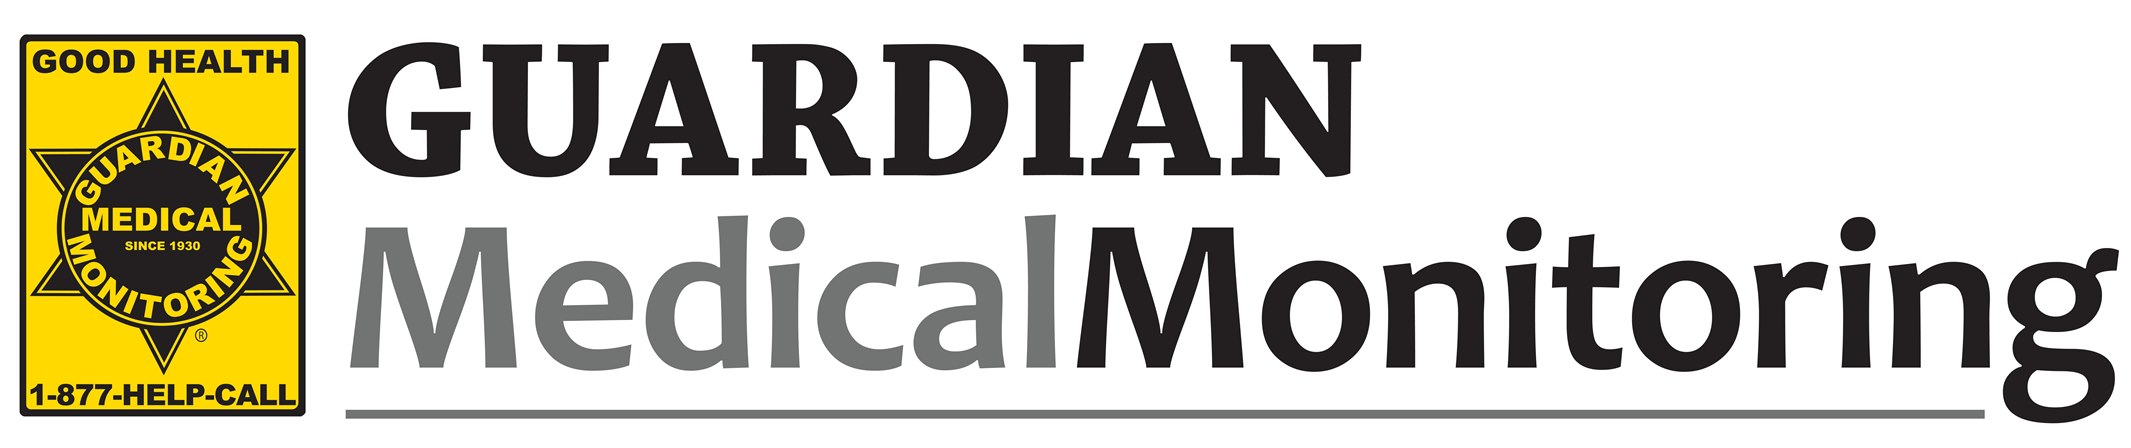 Guardian Medical Monitoring Logo